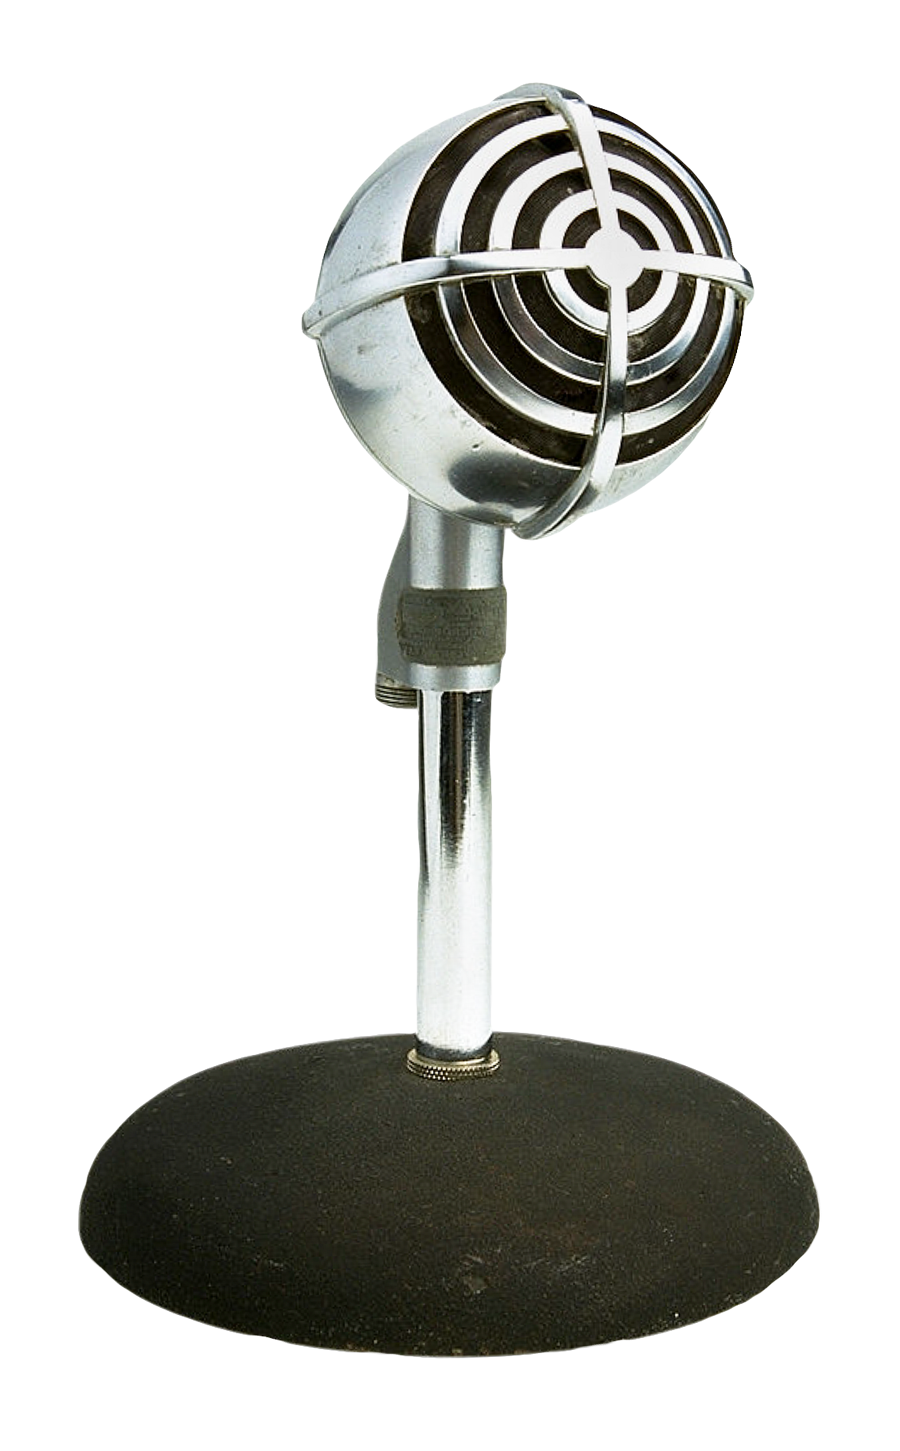 Microphone png transparent. Retro style image purepng